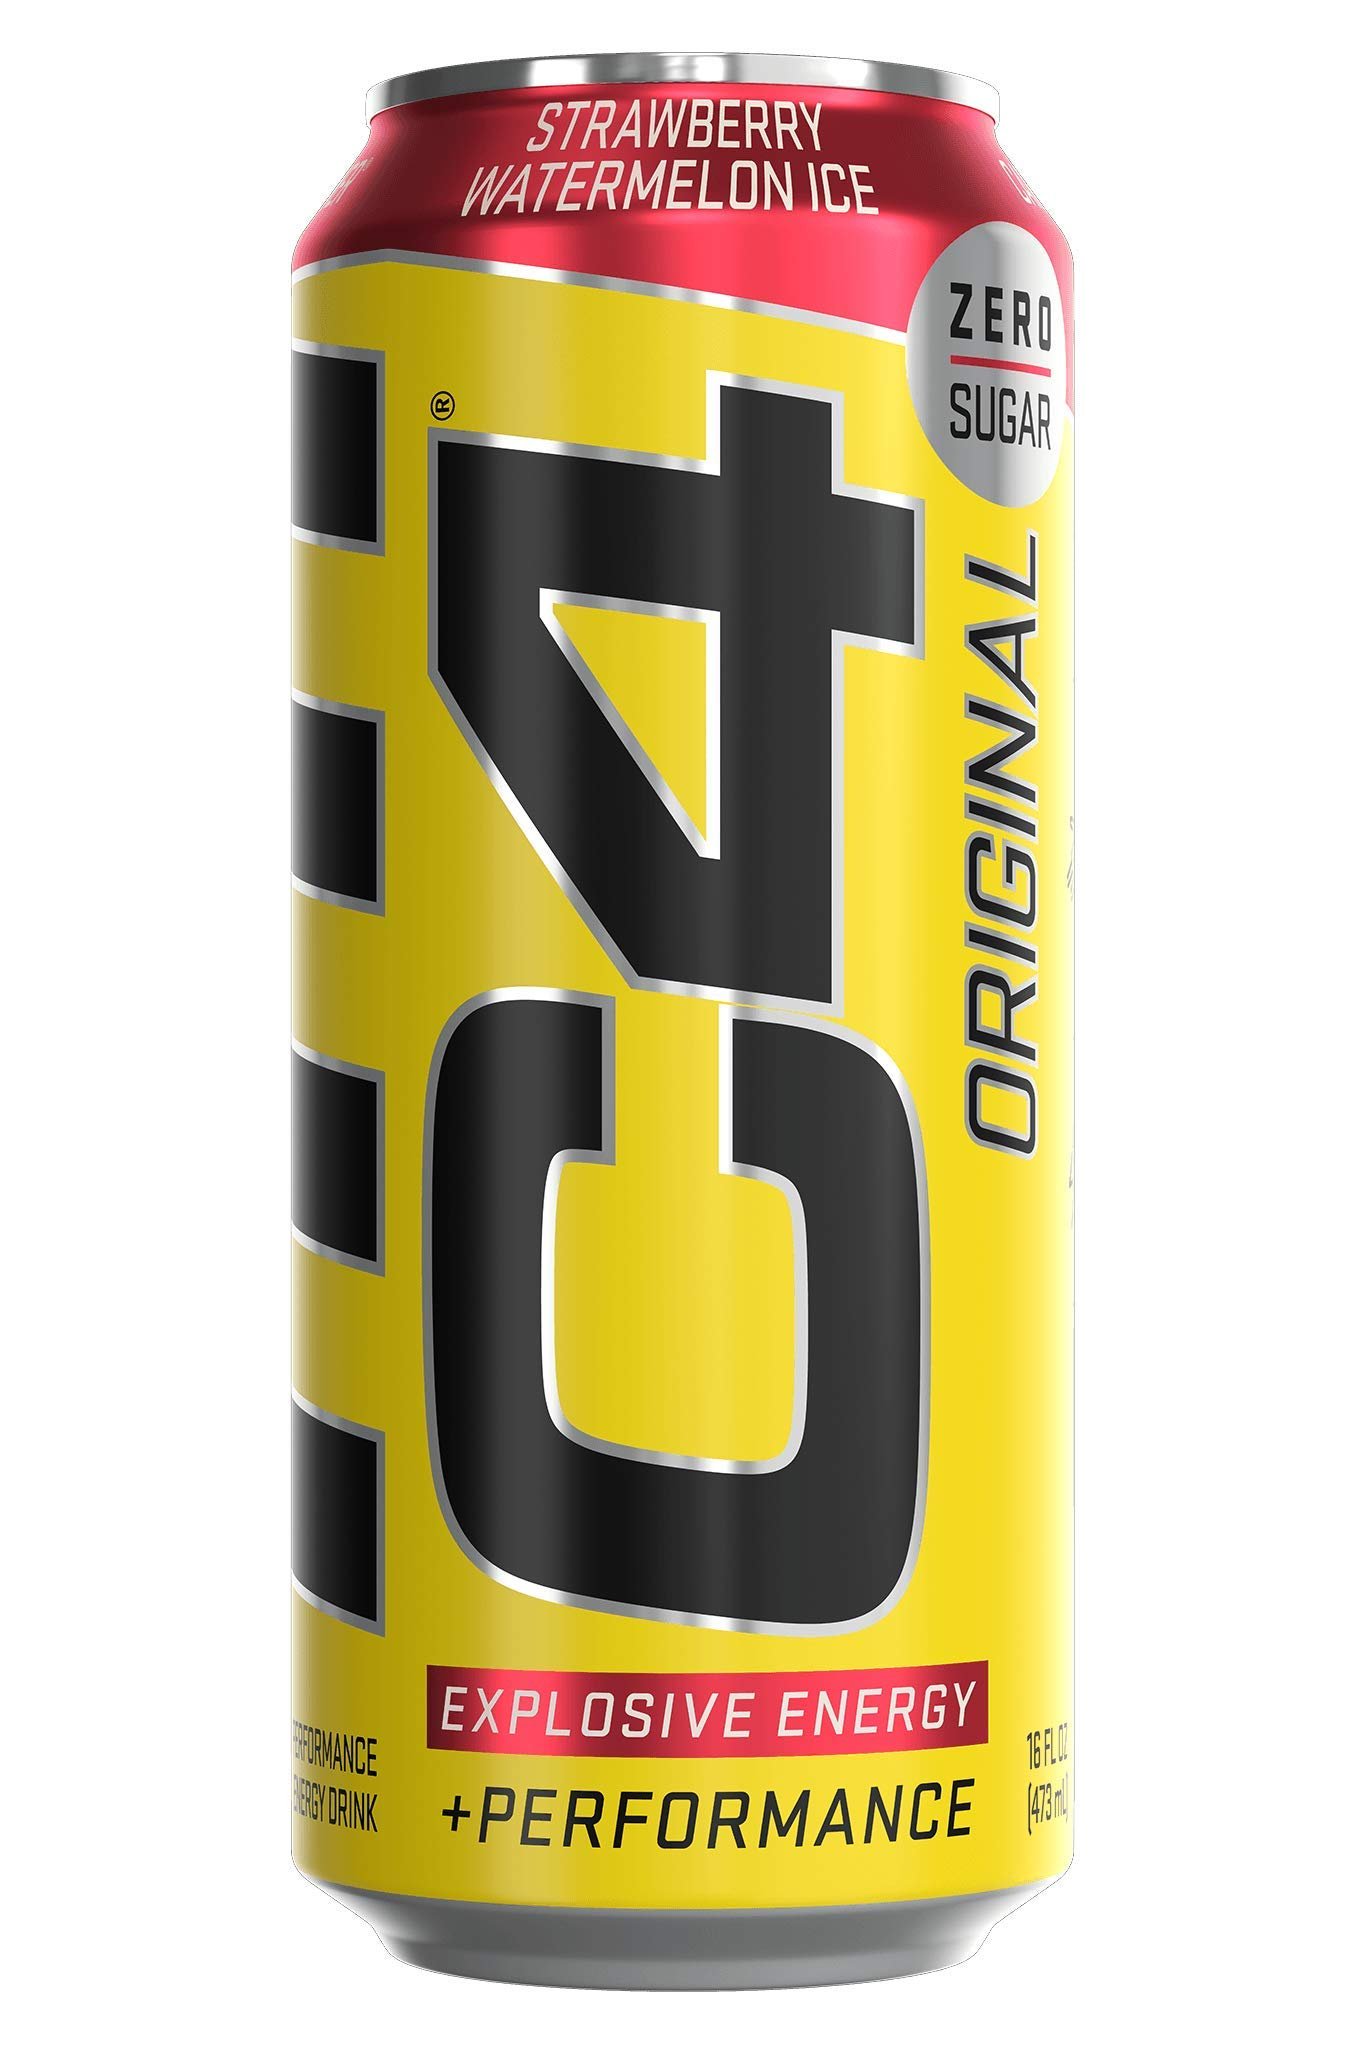 C4 Original Sugar Free Sparkling Energy Drink Strawberry Watermelon Ice   Pre Workout Performance Drink with No Artificial Colors or Dyes   16oz (Pack of 12)